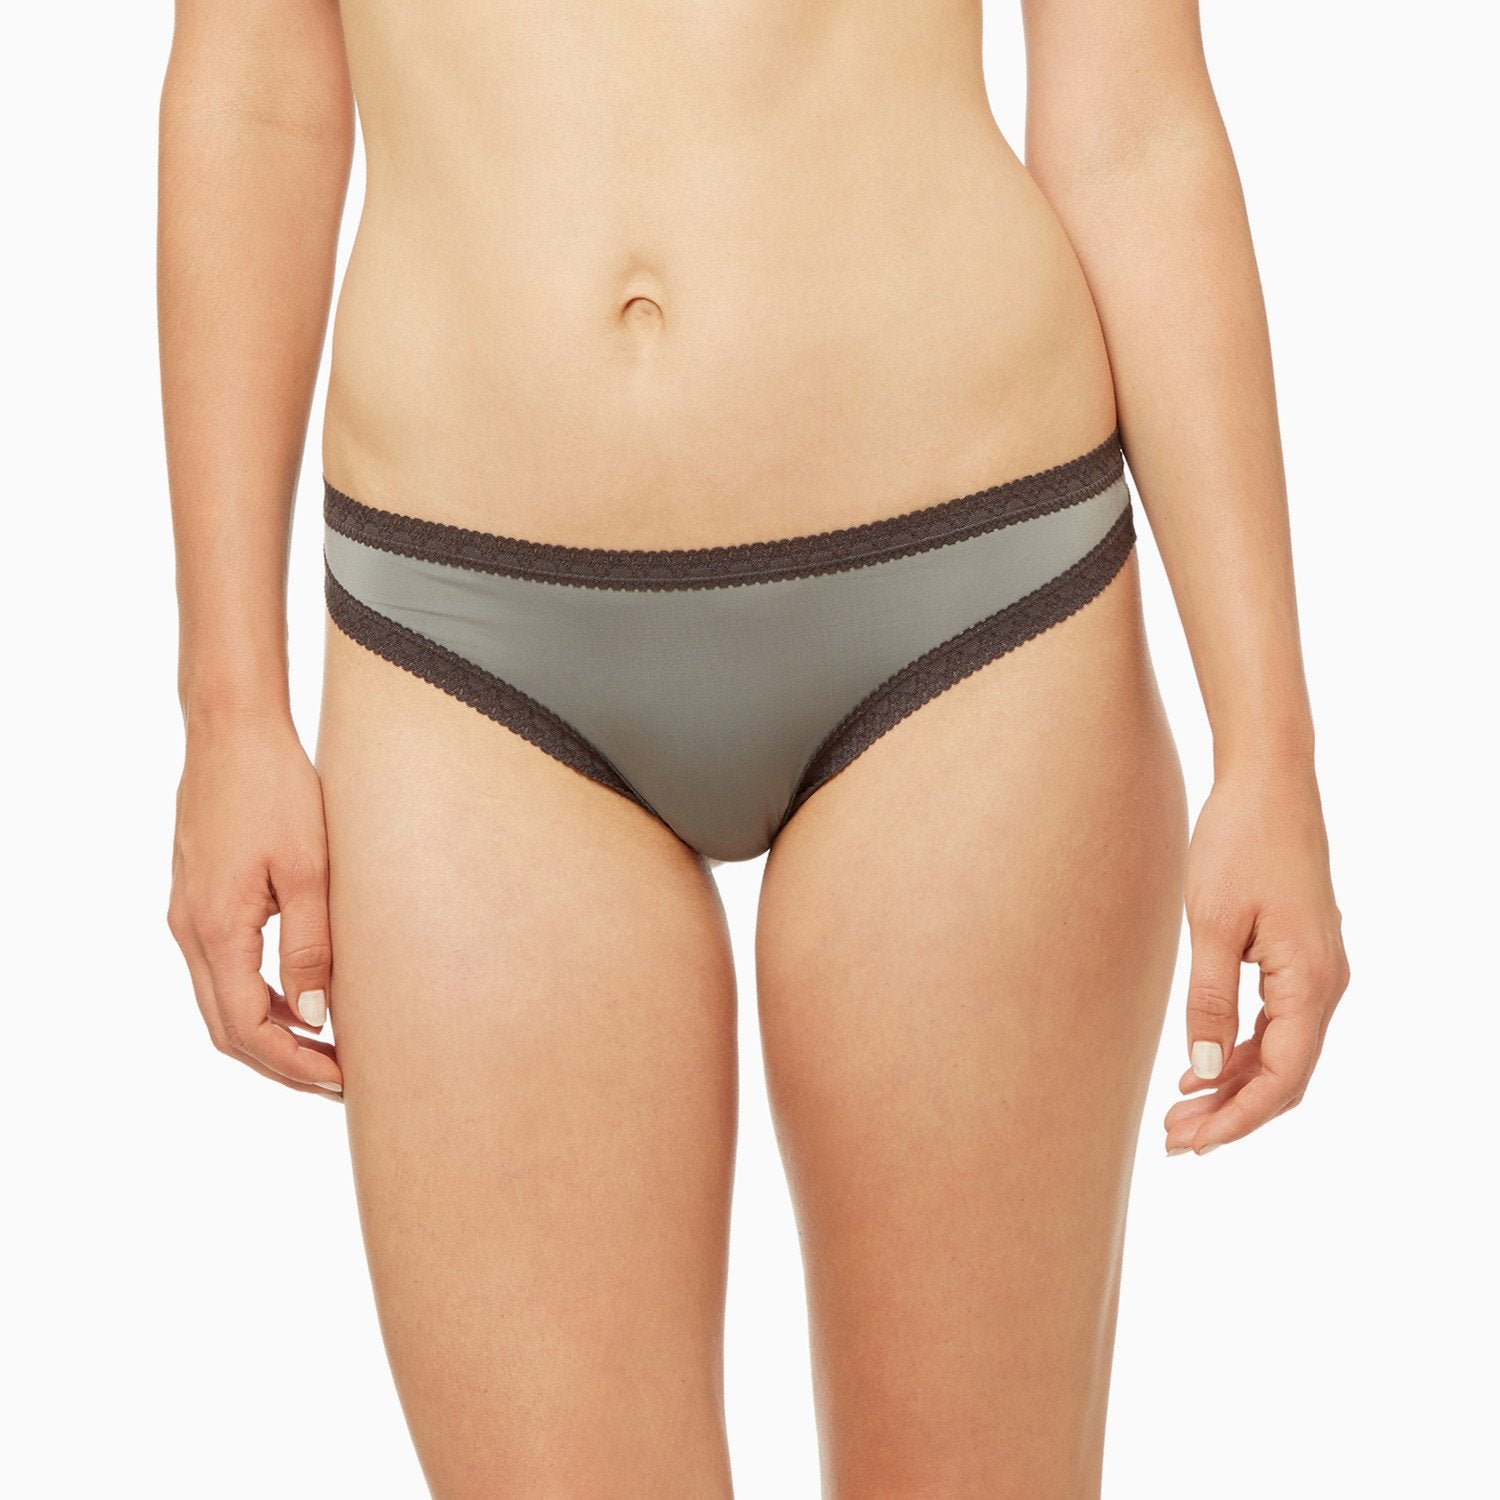 Pretty Little Panties - Charcoal